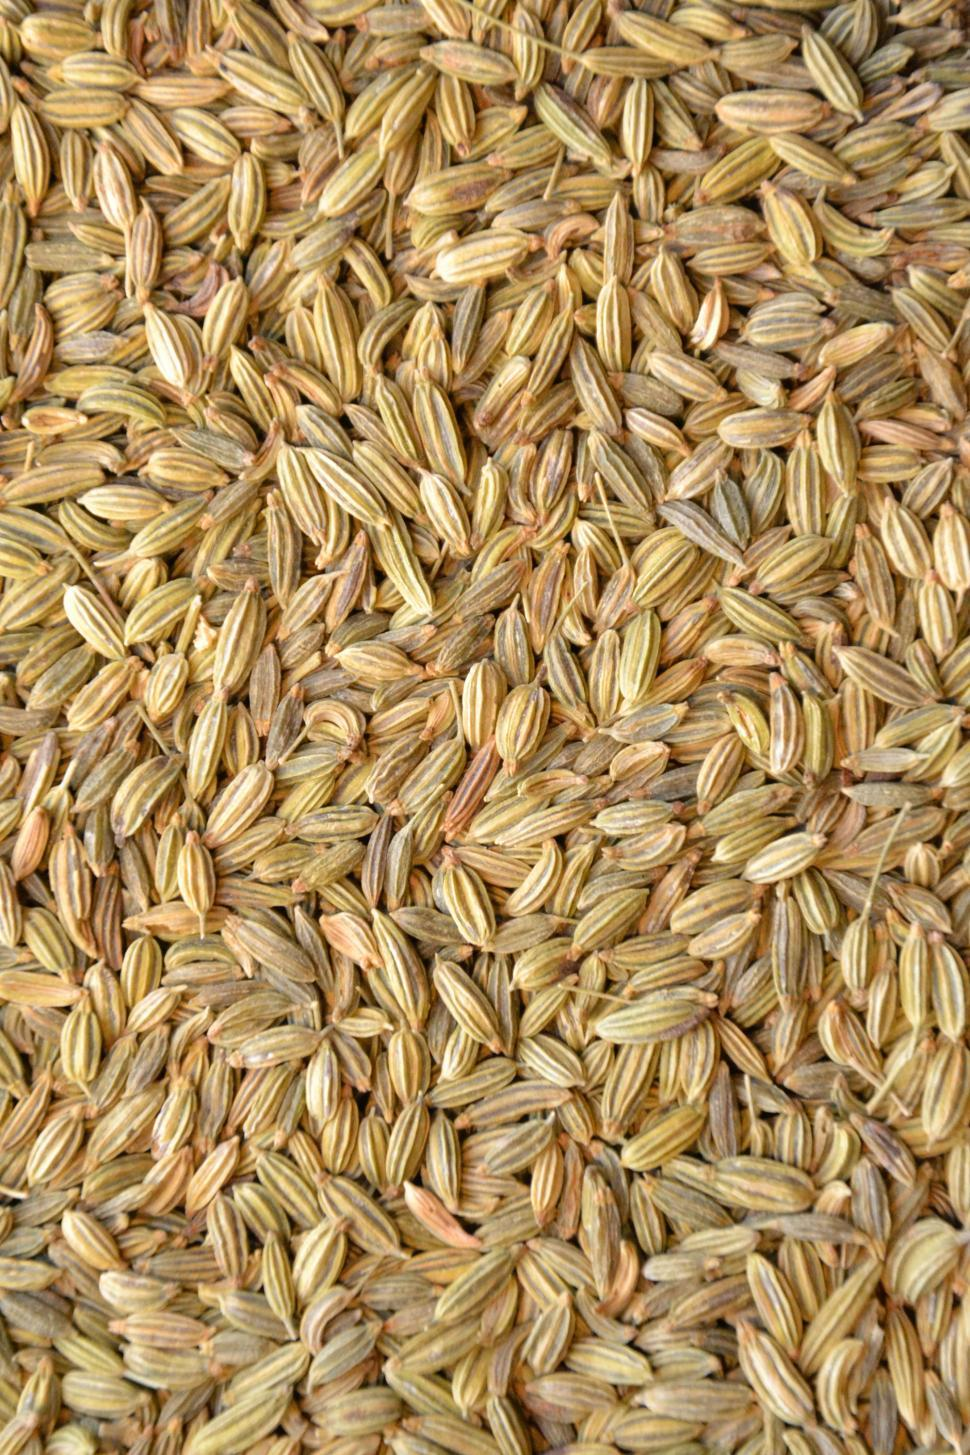 Download Free Stock Photo of Fennel seeds